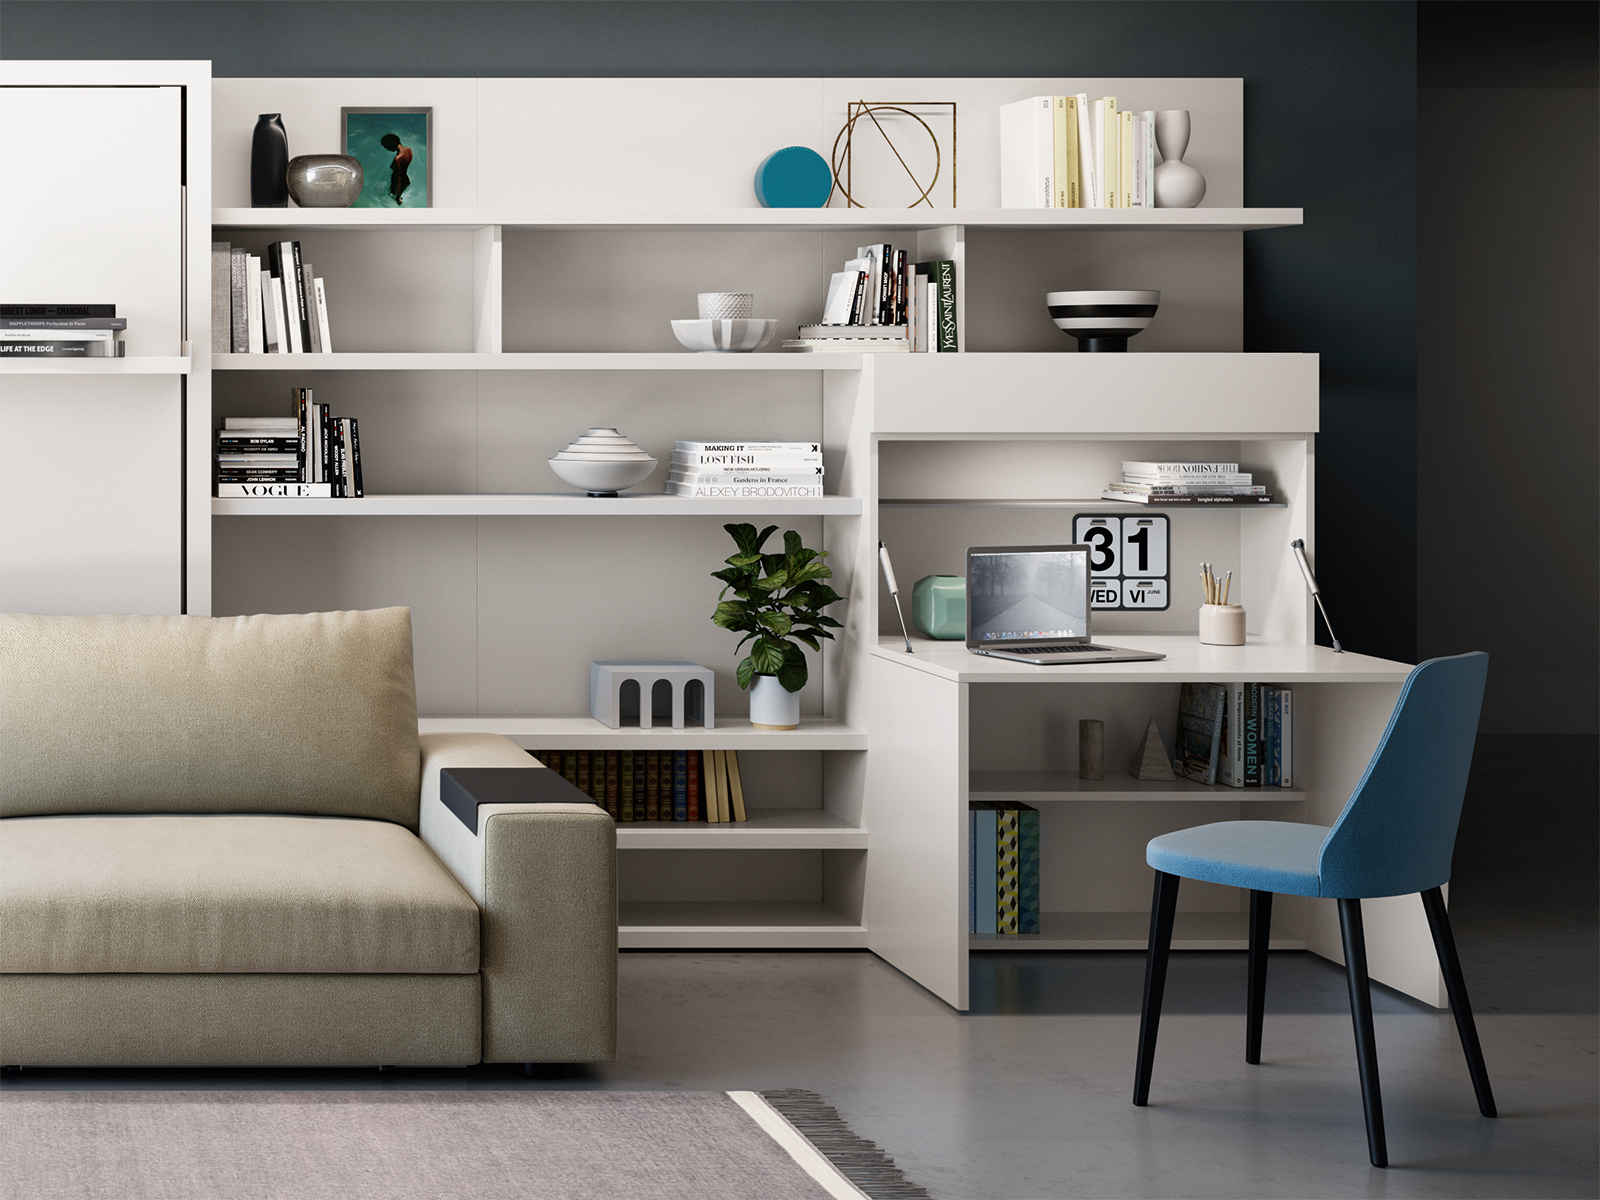 The Home Office modular cabinet folds open to reveal a generous work surface.